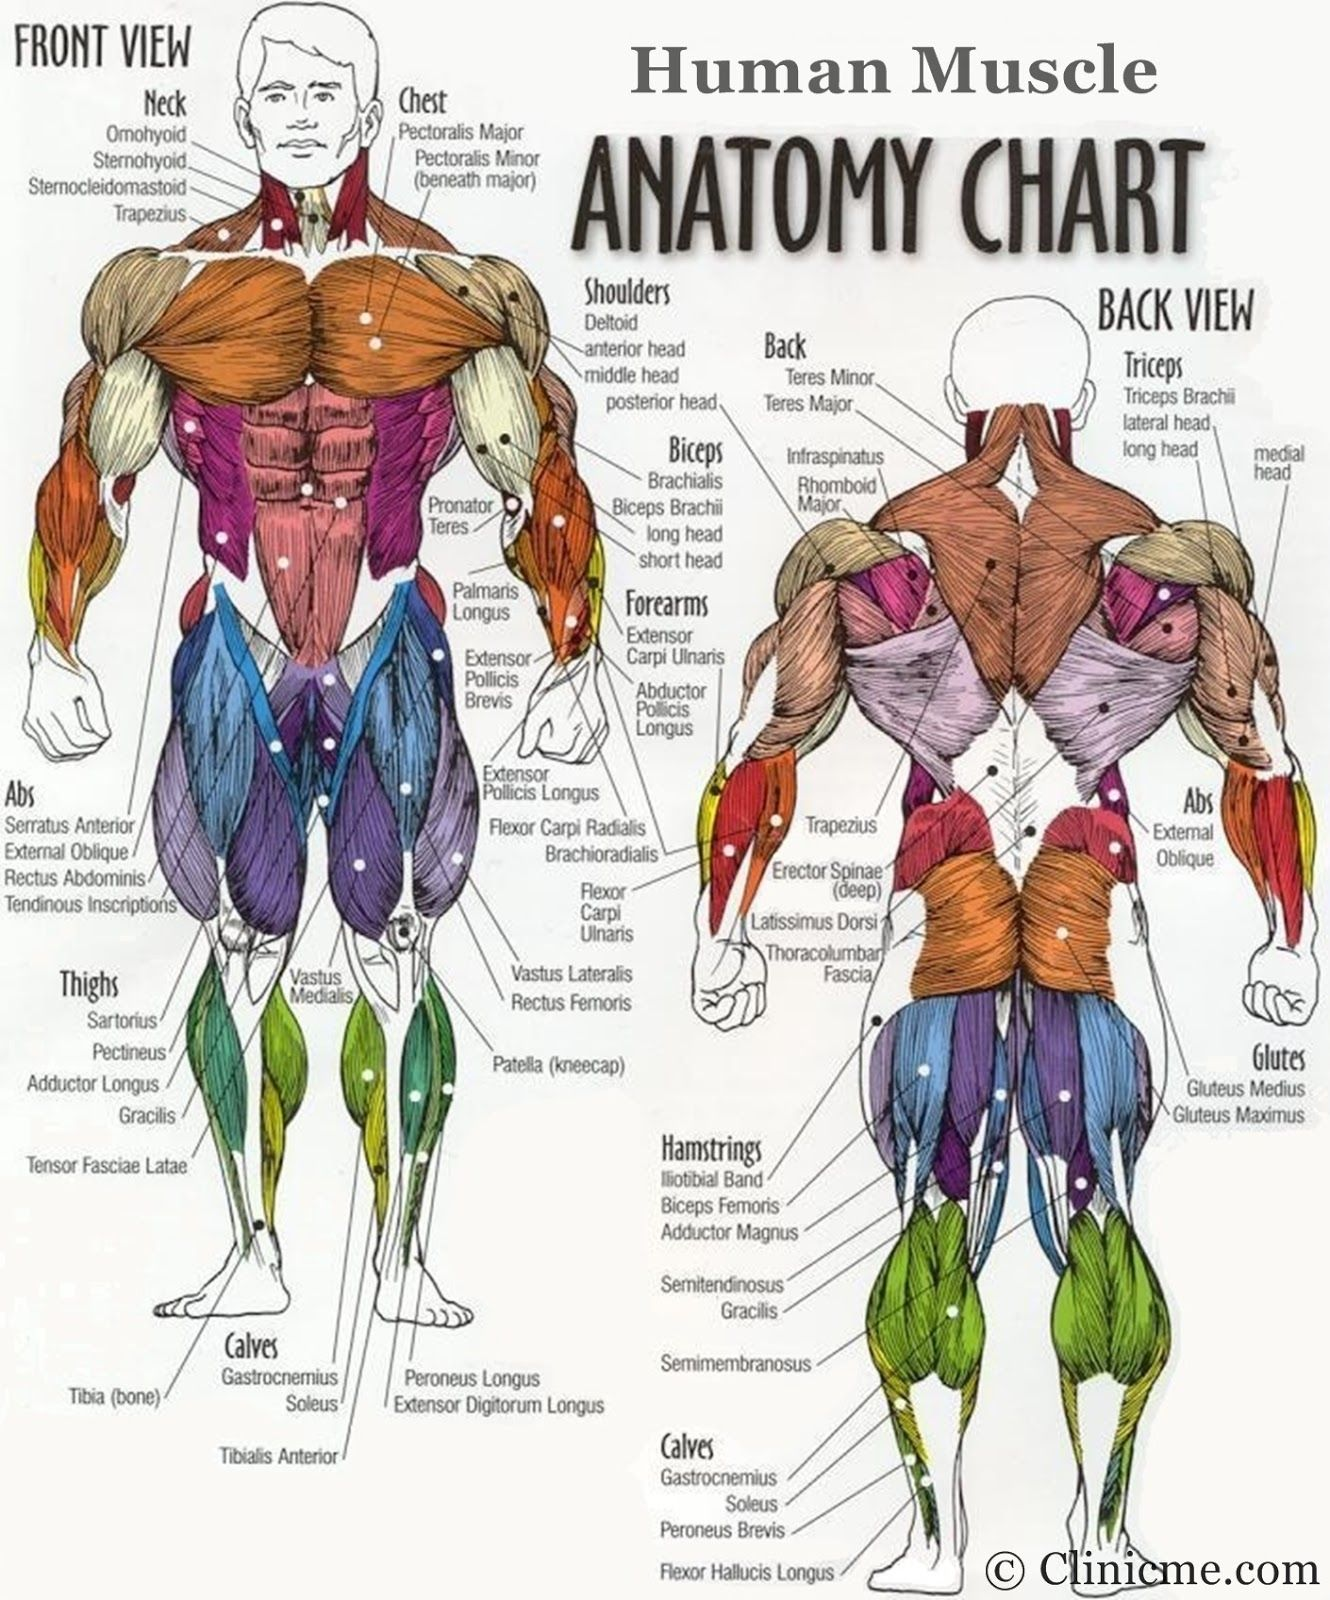 Chest Muscle Groups Diagram - Find Wiring Diagram •